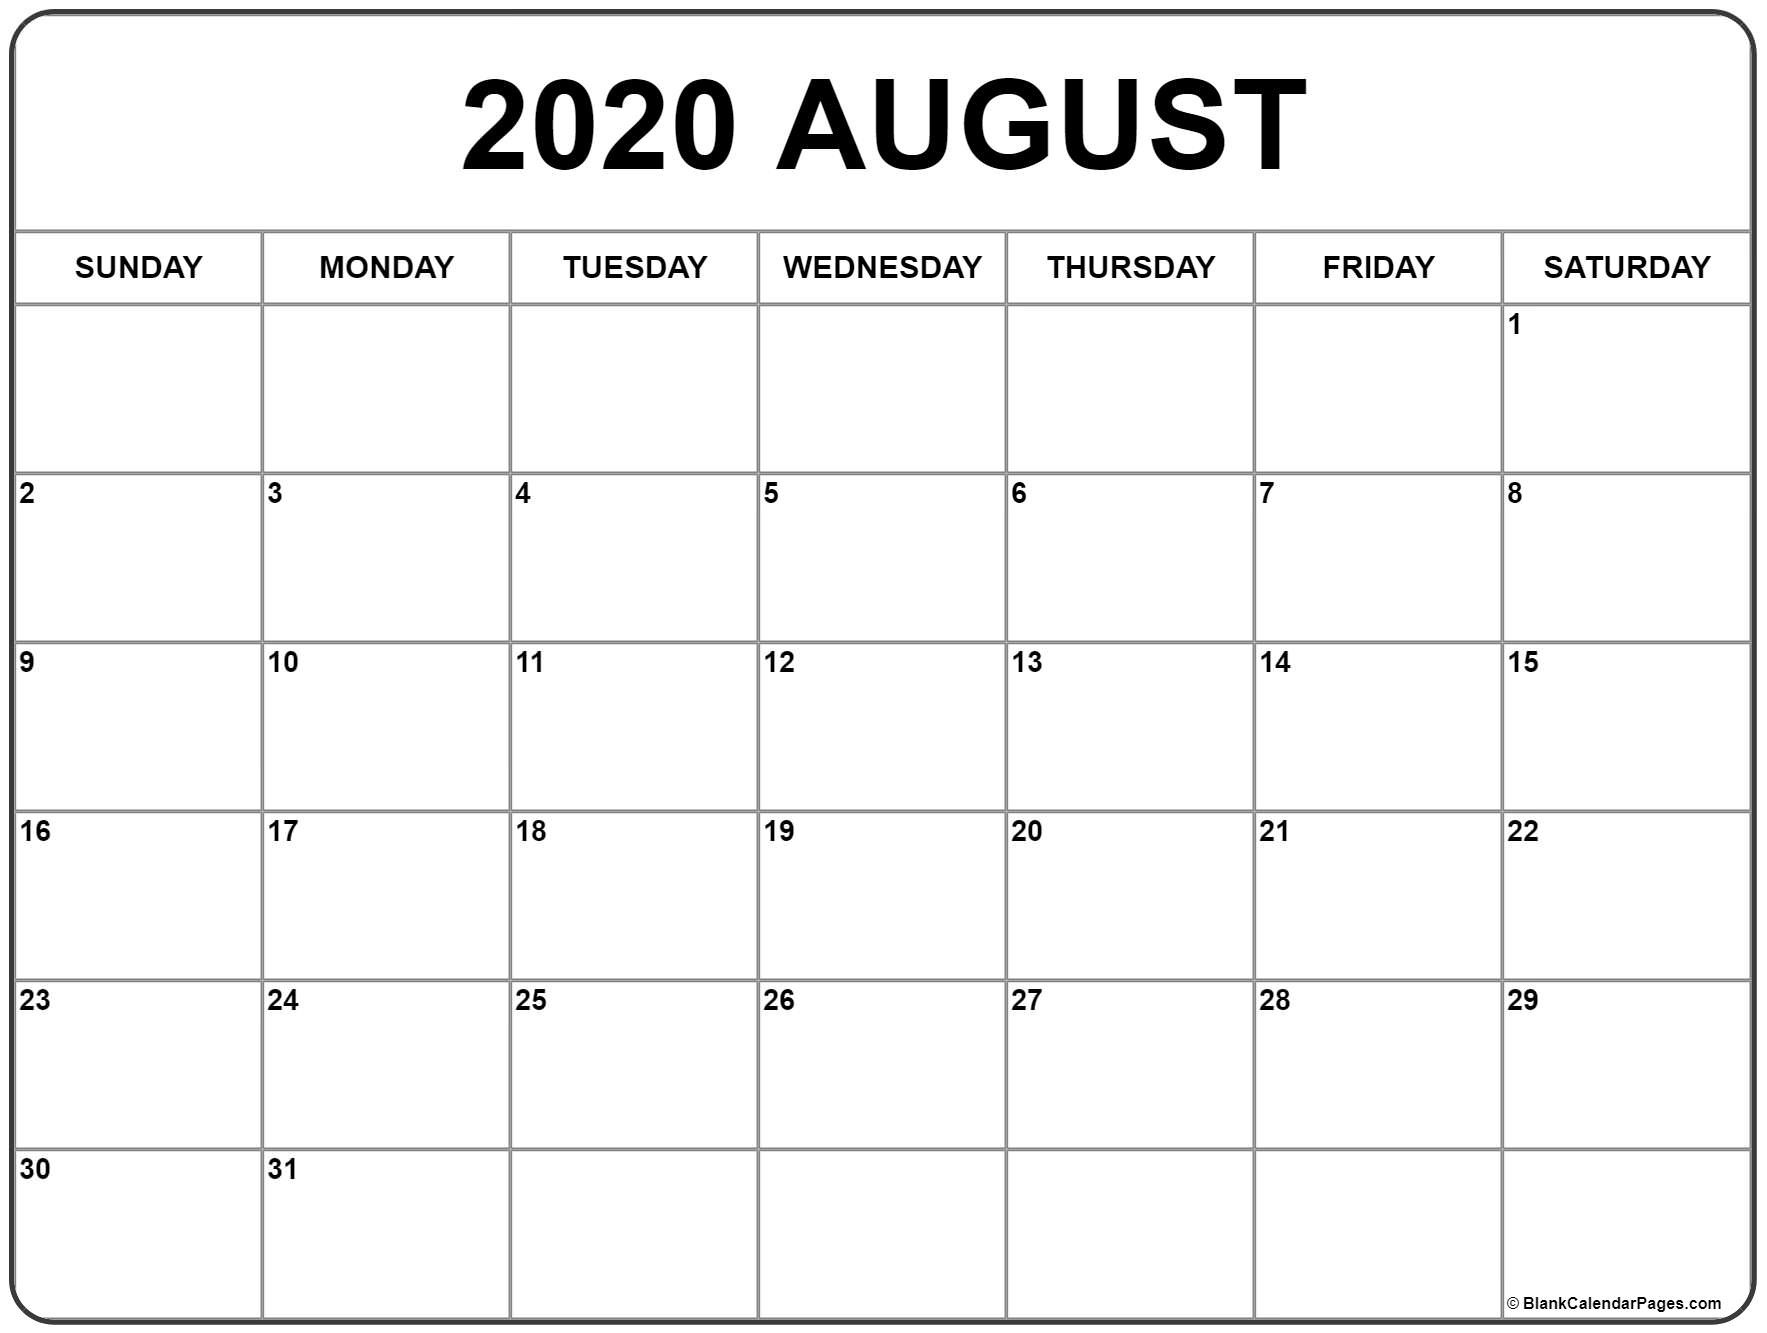 August 2020 Calendar | Free Printable Monthly Calendars-Blank Calendars June July And August 2020